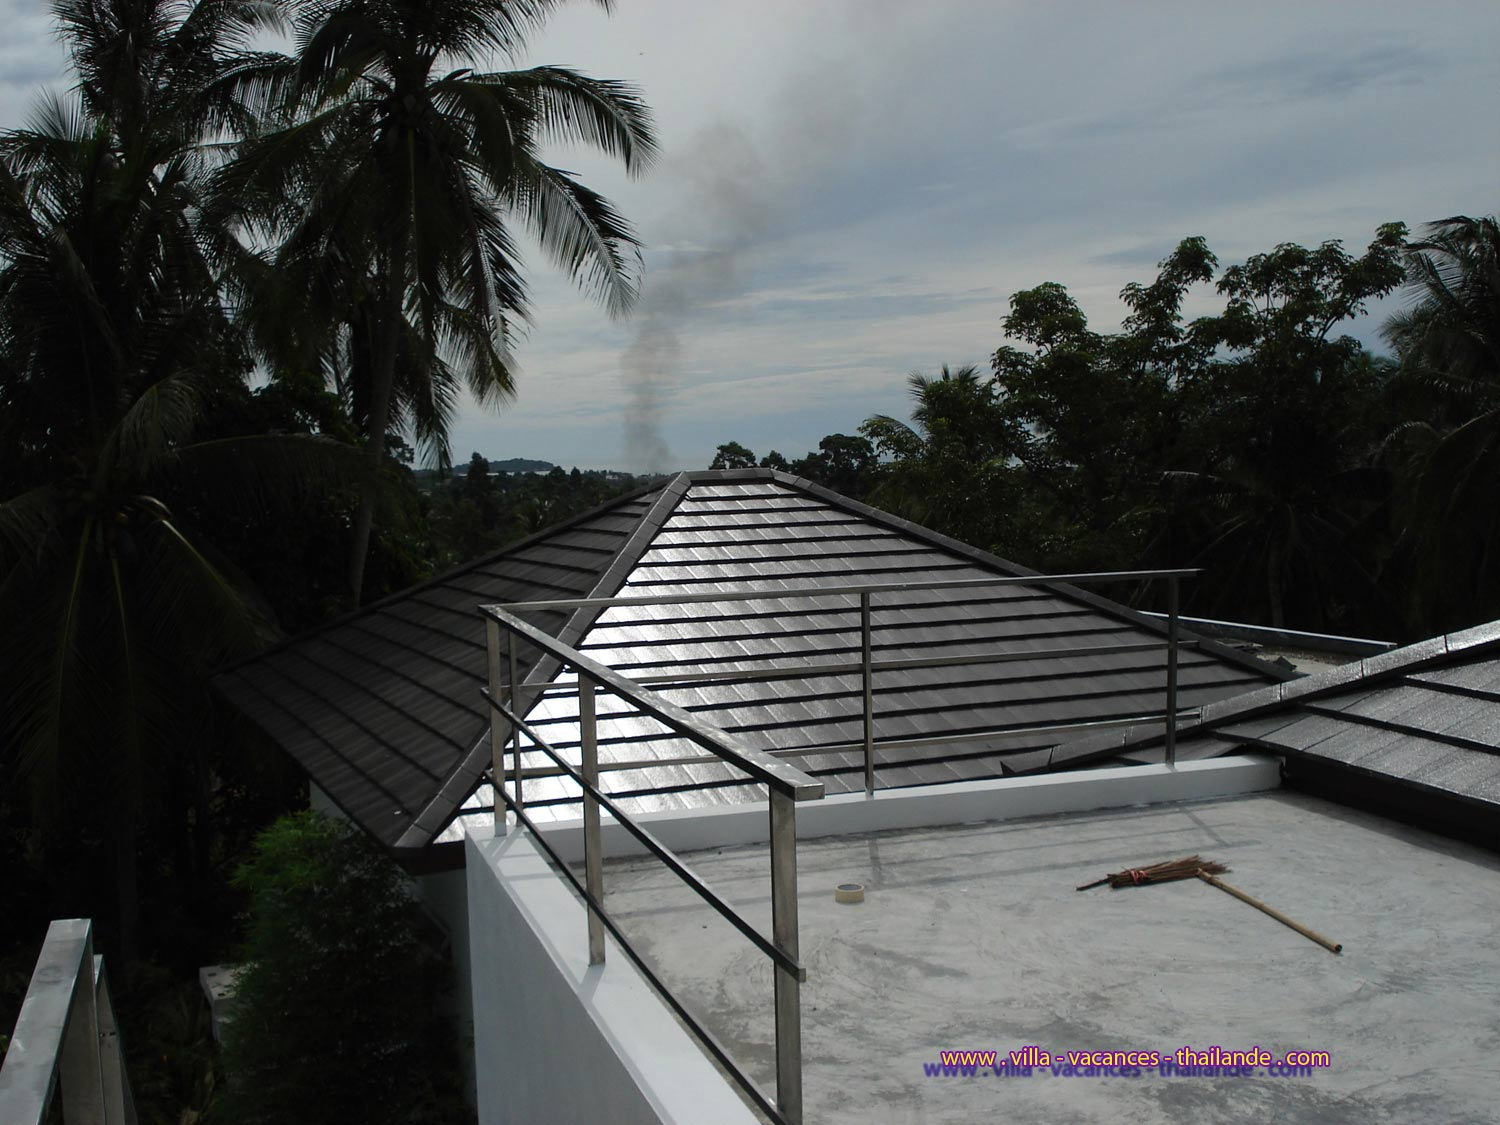 view from the roof terrace at the top of the house on the bay of Chaweng in Koh Samui